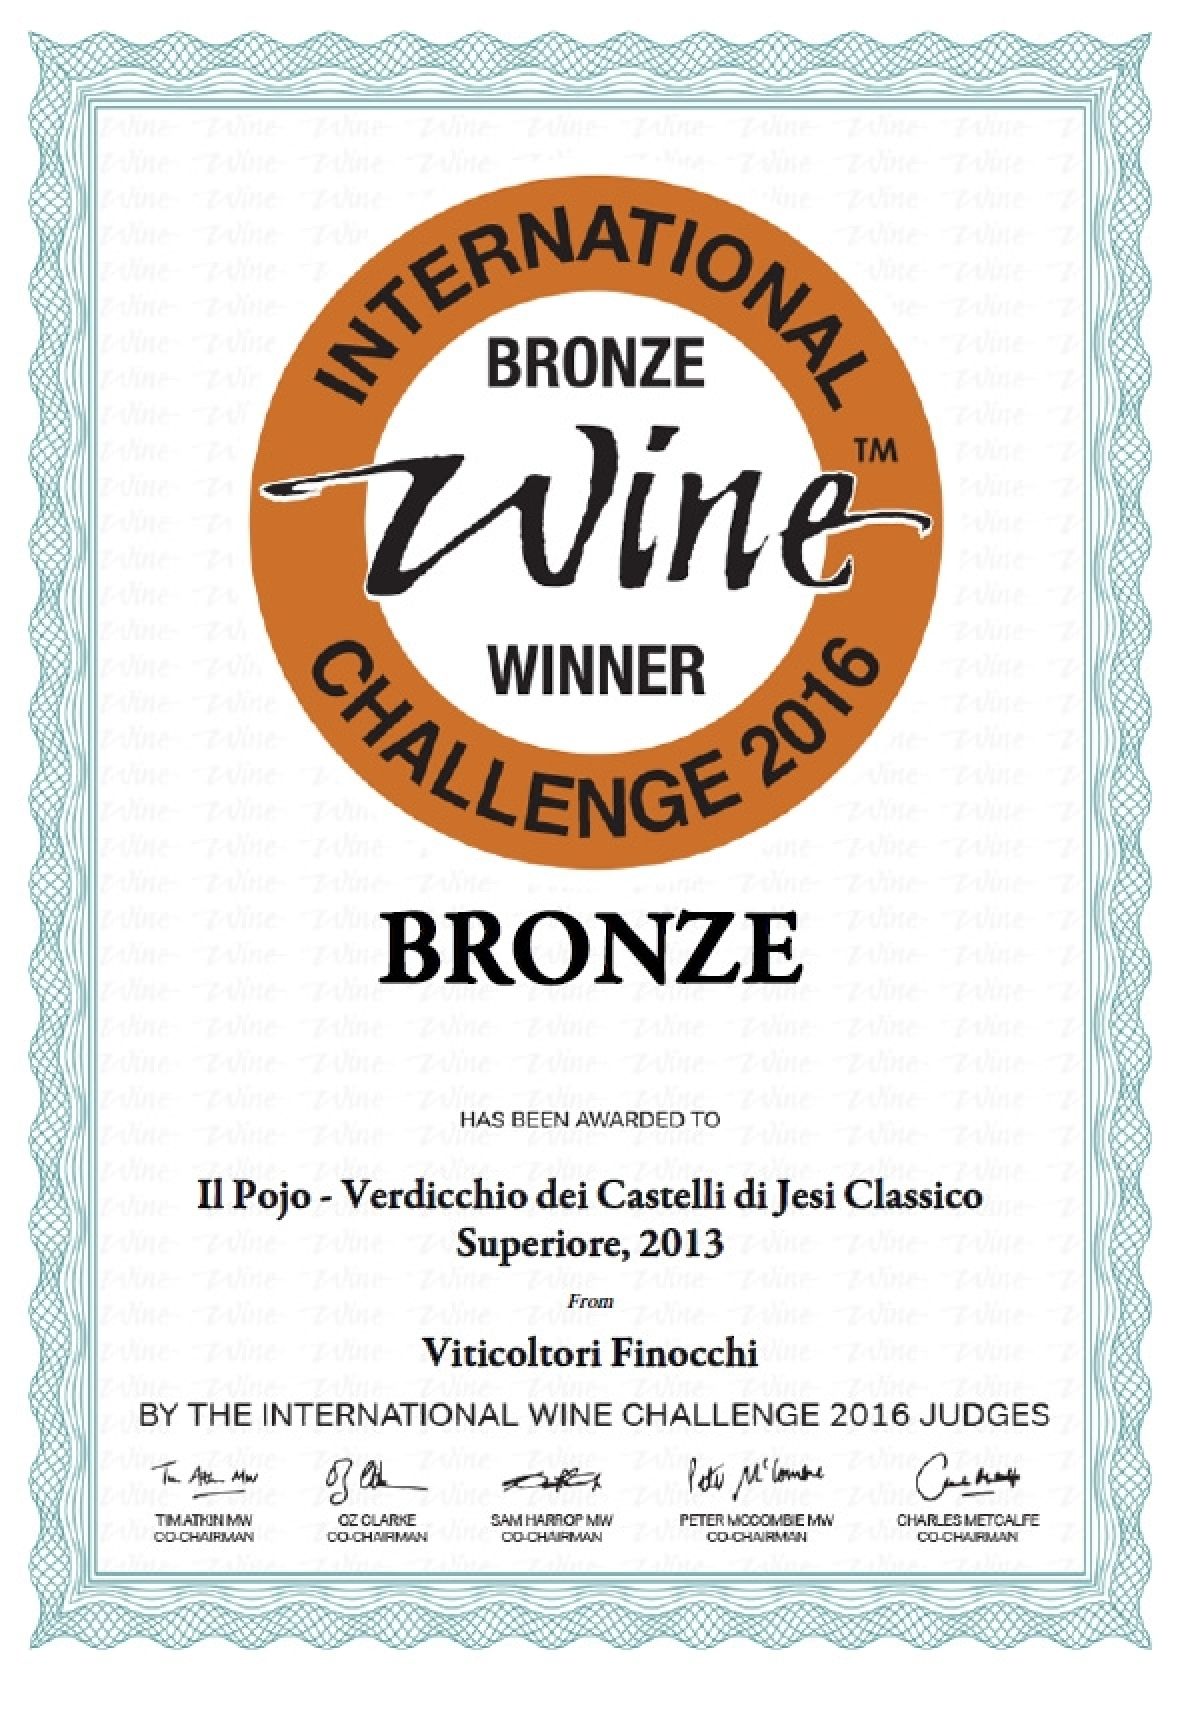 Medaglia di Bronzo all'International Wine Challenge 2016 - Il Pojo